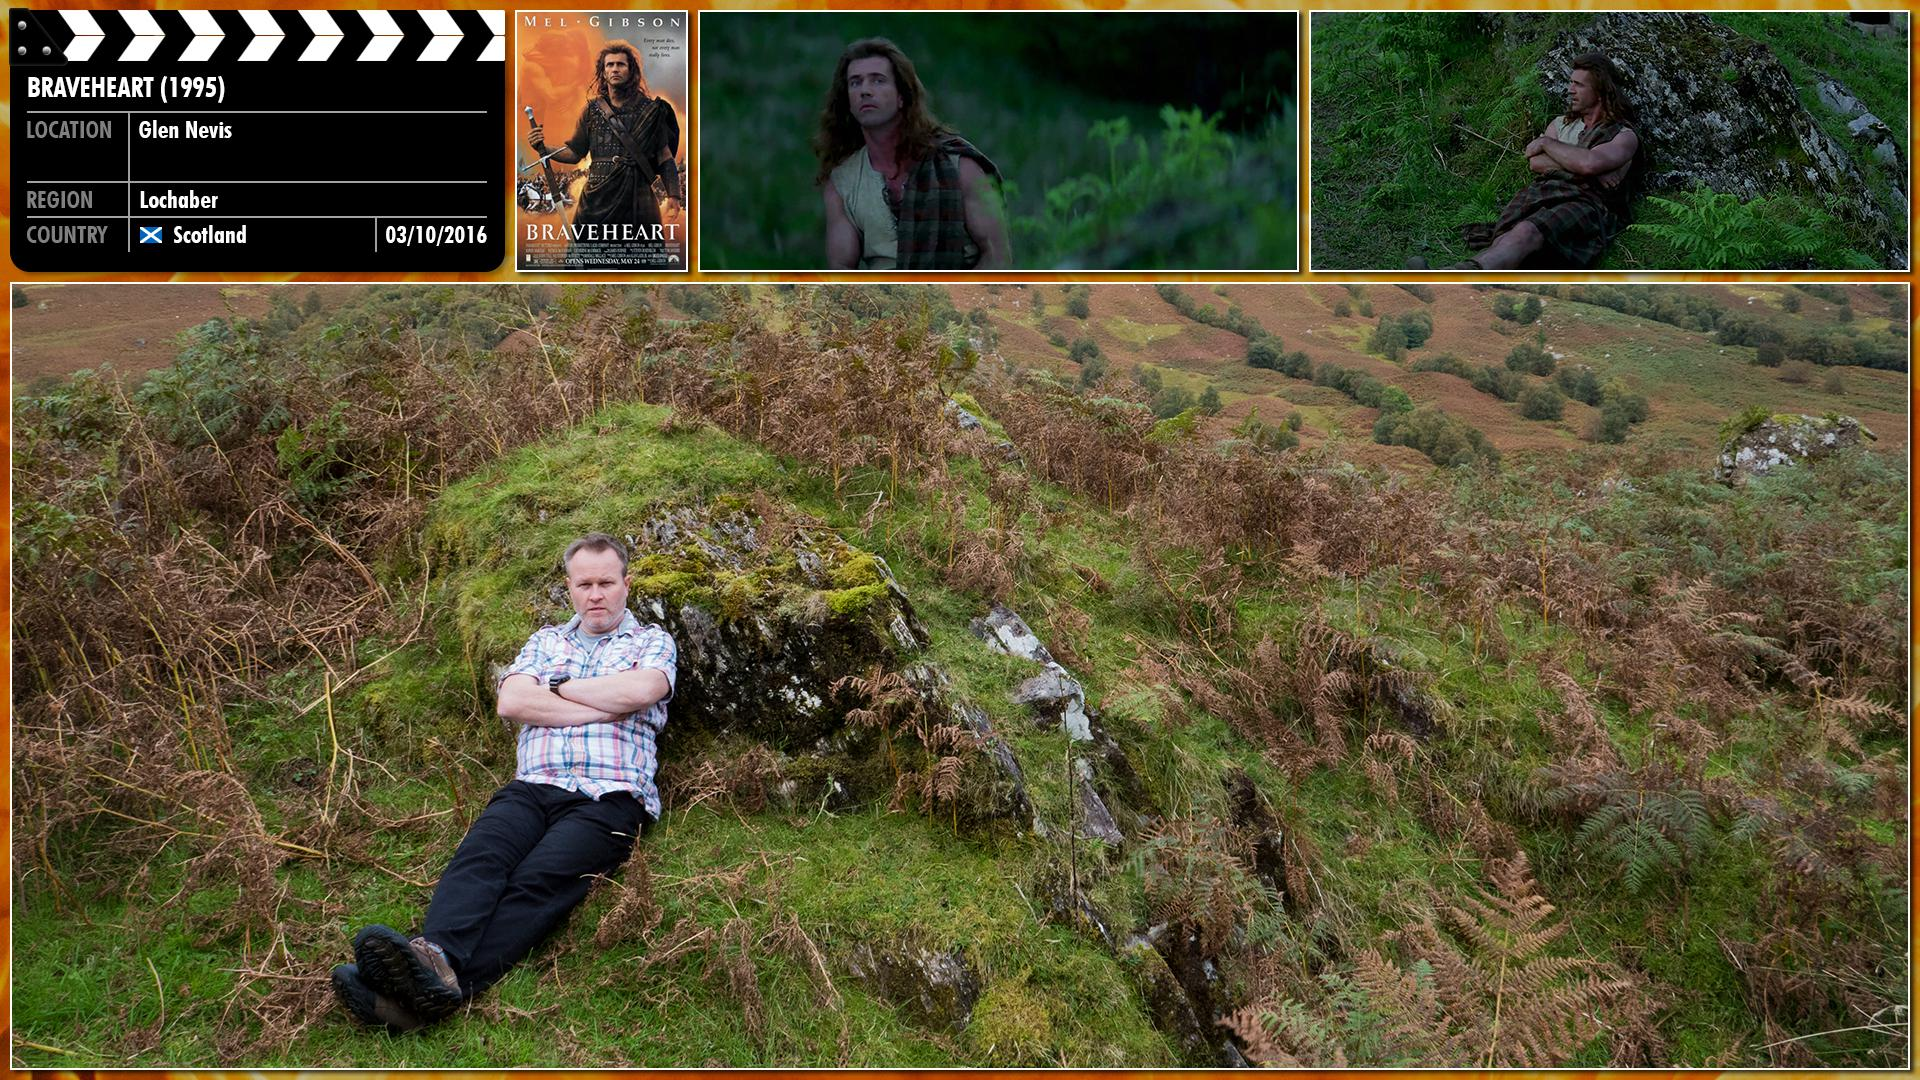 Filming location photo for Braveheart (1995) 9 of 9